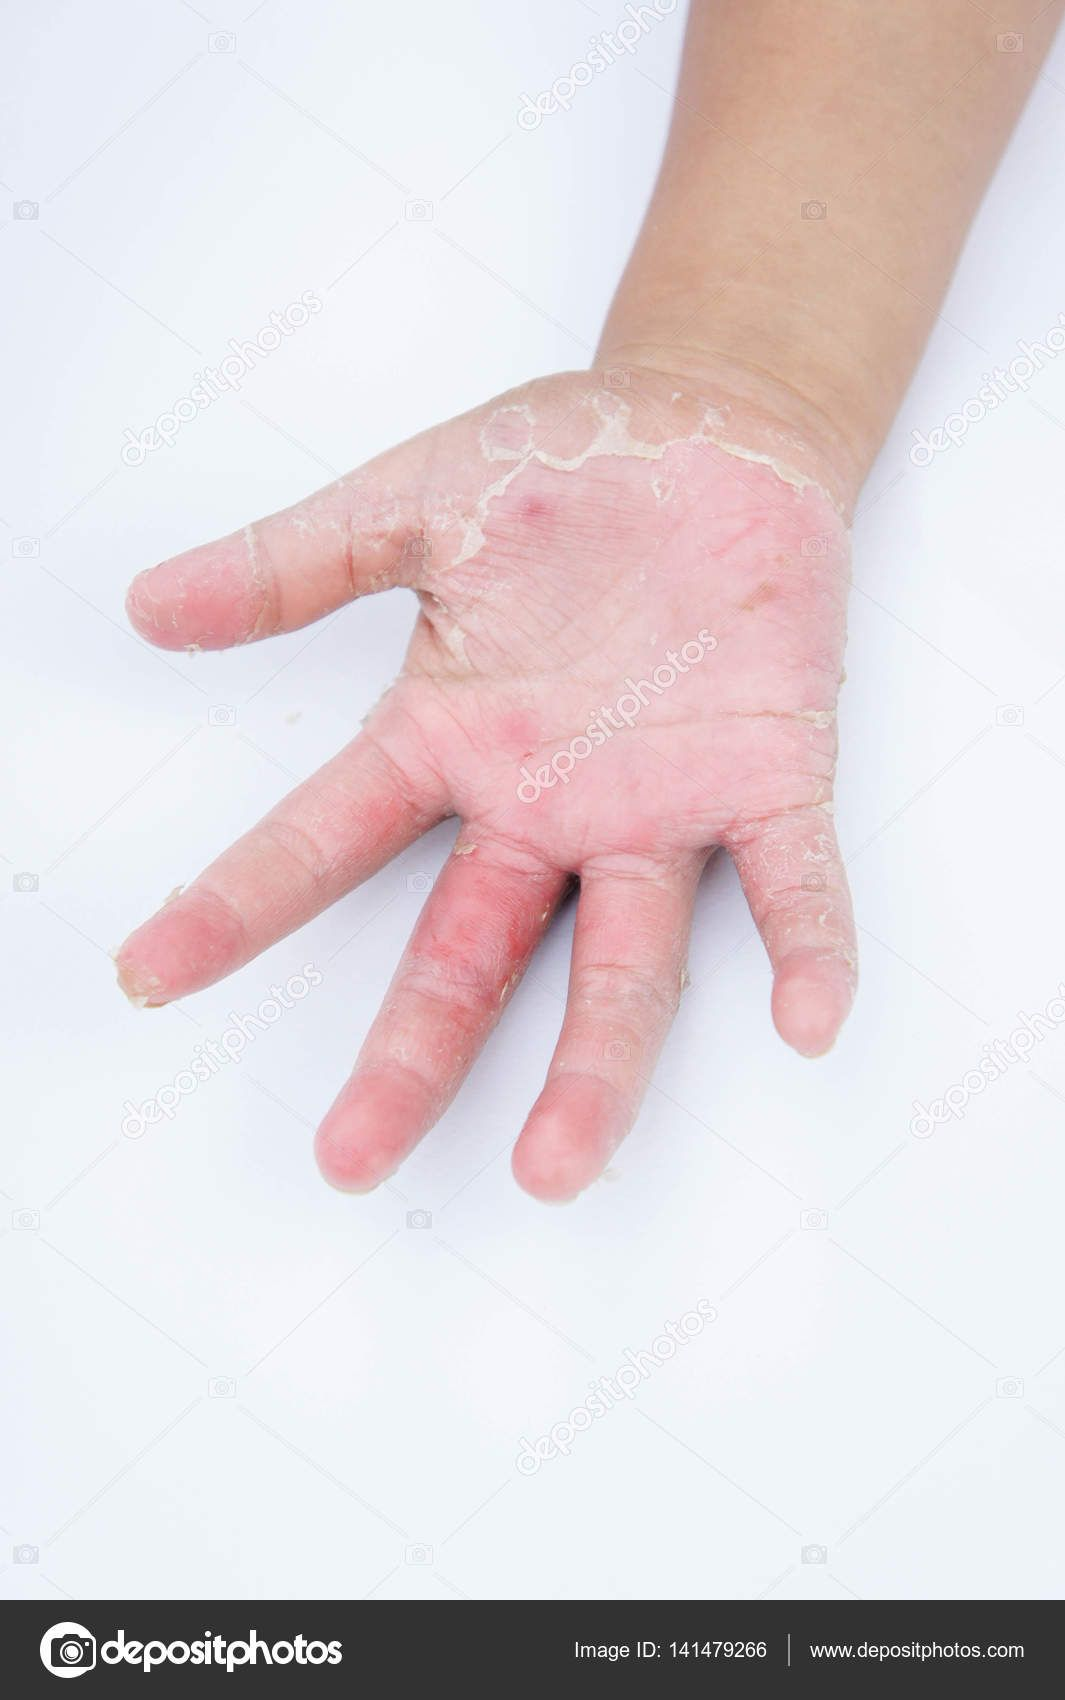 Dry hands, peel, Contact dermatitis, fungal infections, Skin inf ...